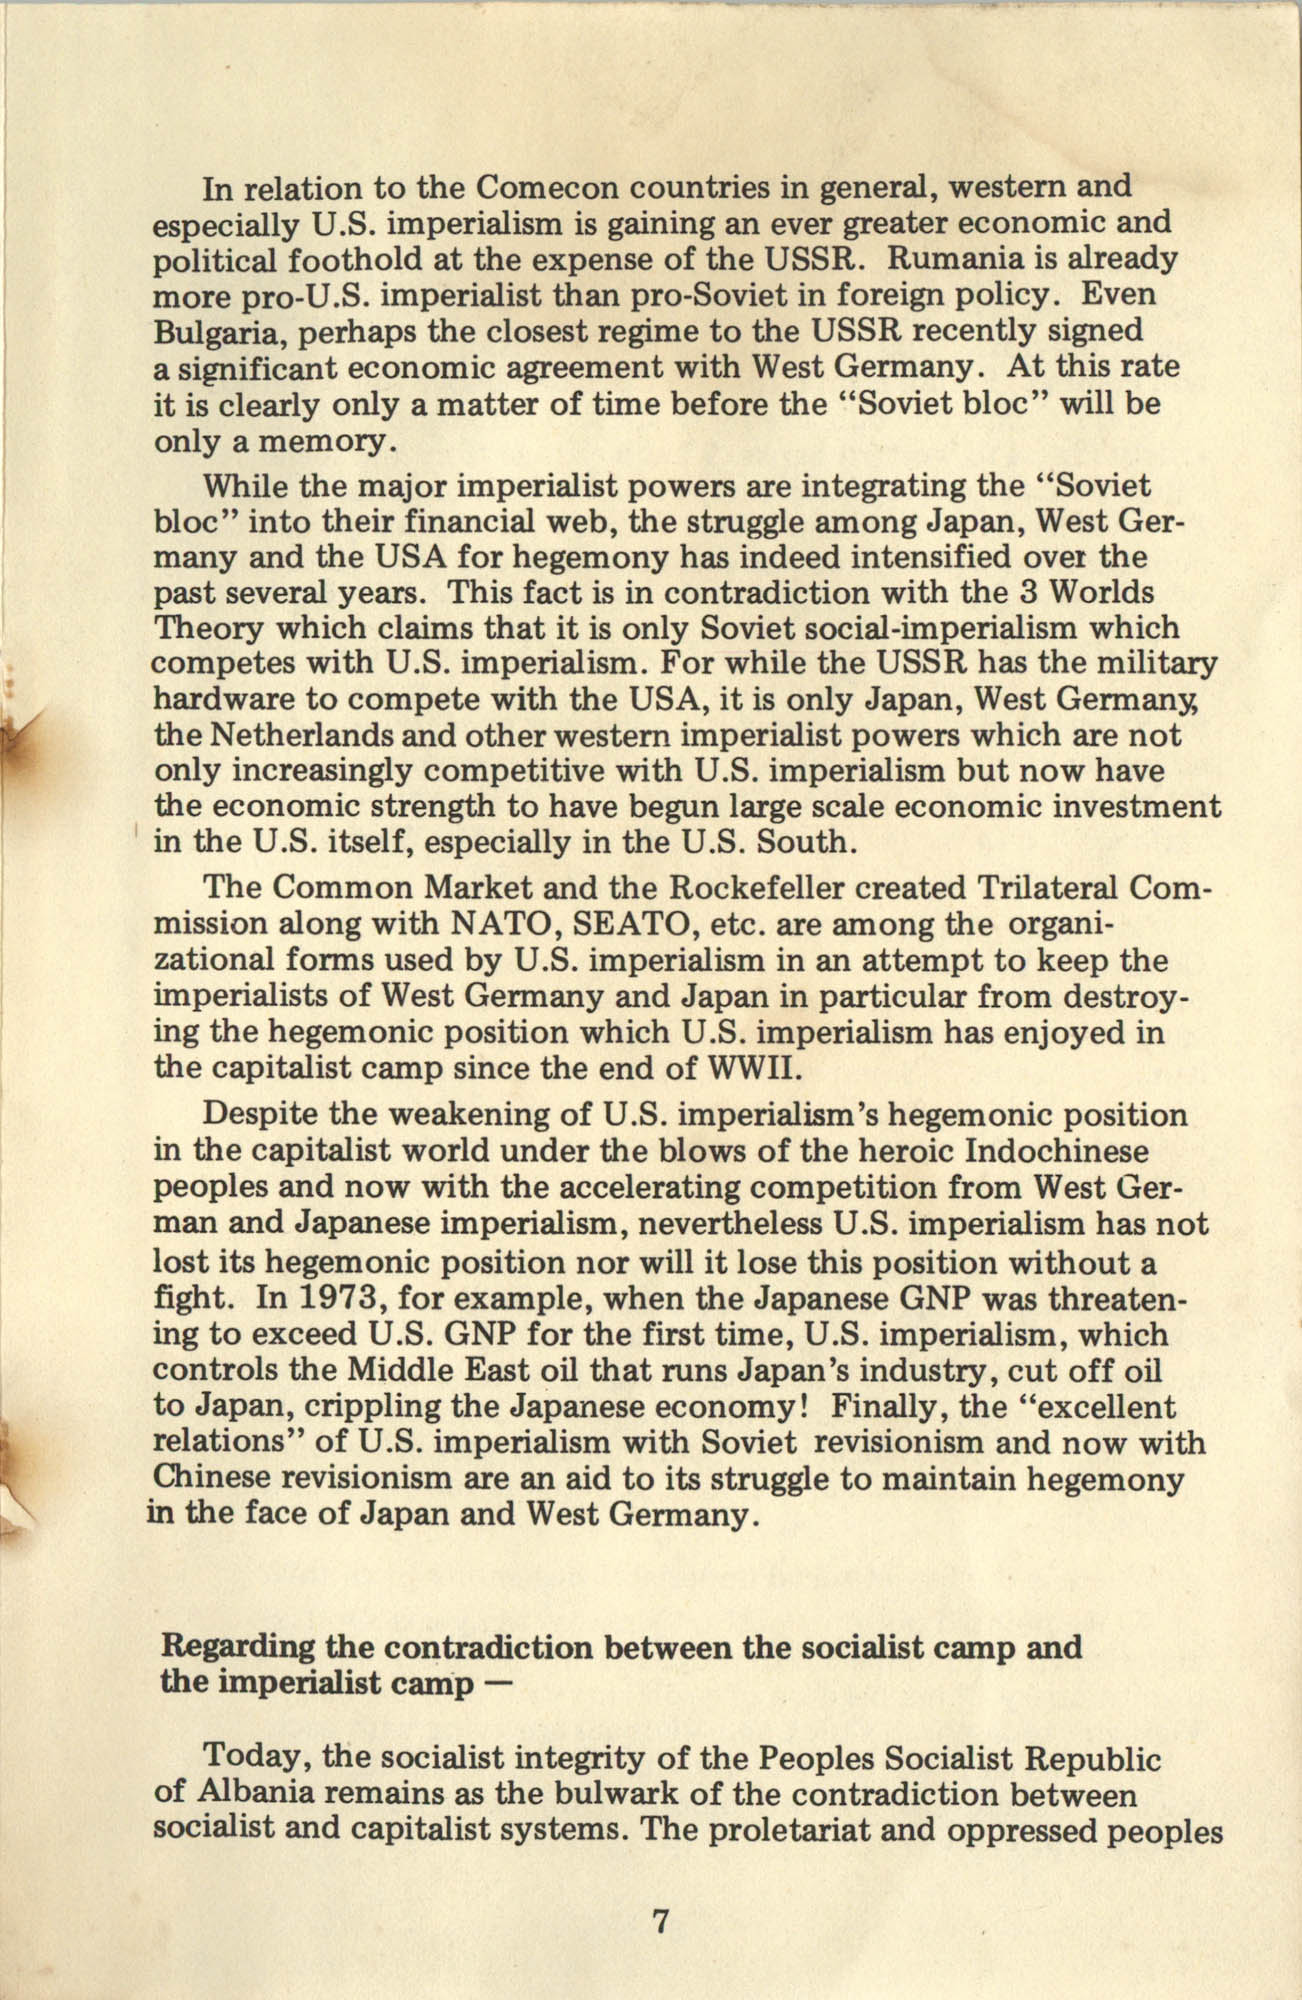 Ray O. Light Newsletter, Volume 1, Number 2, Page 7